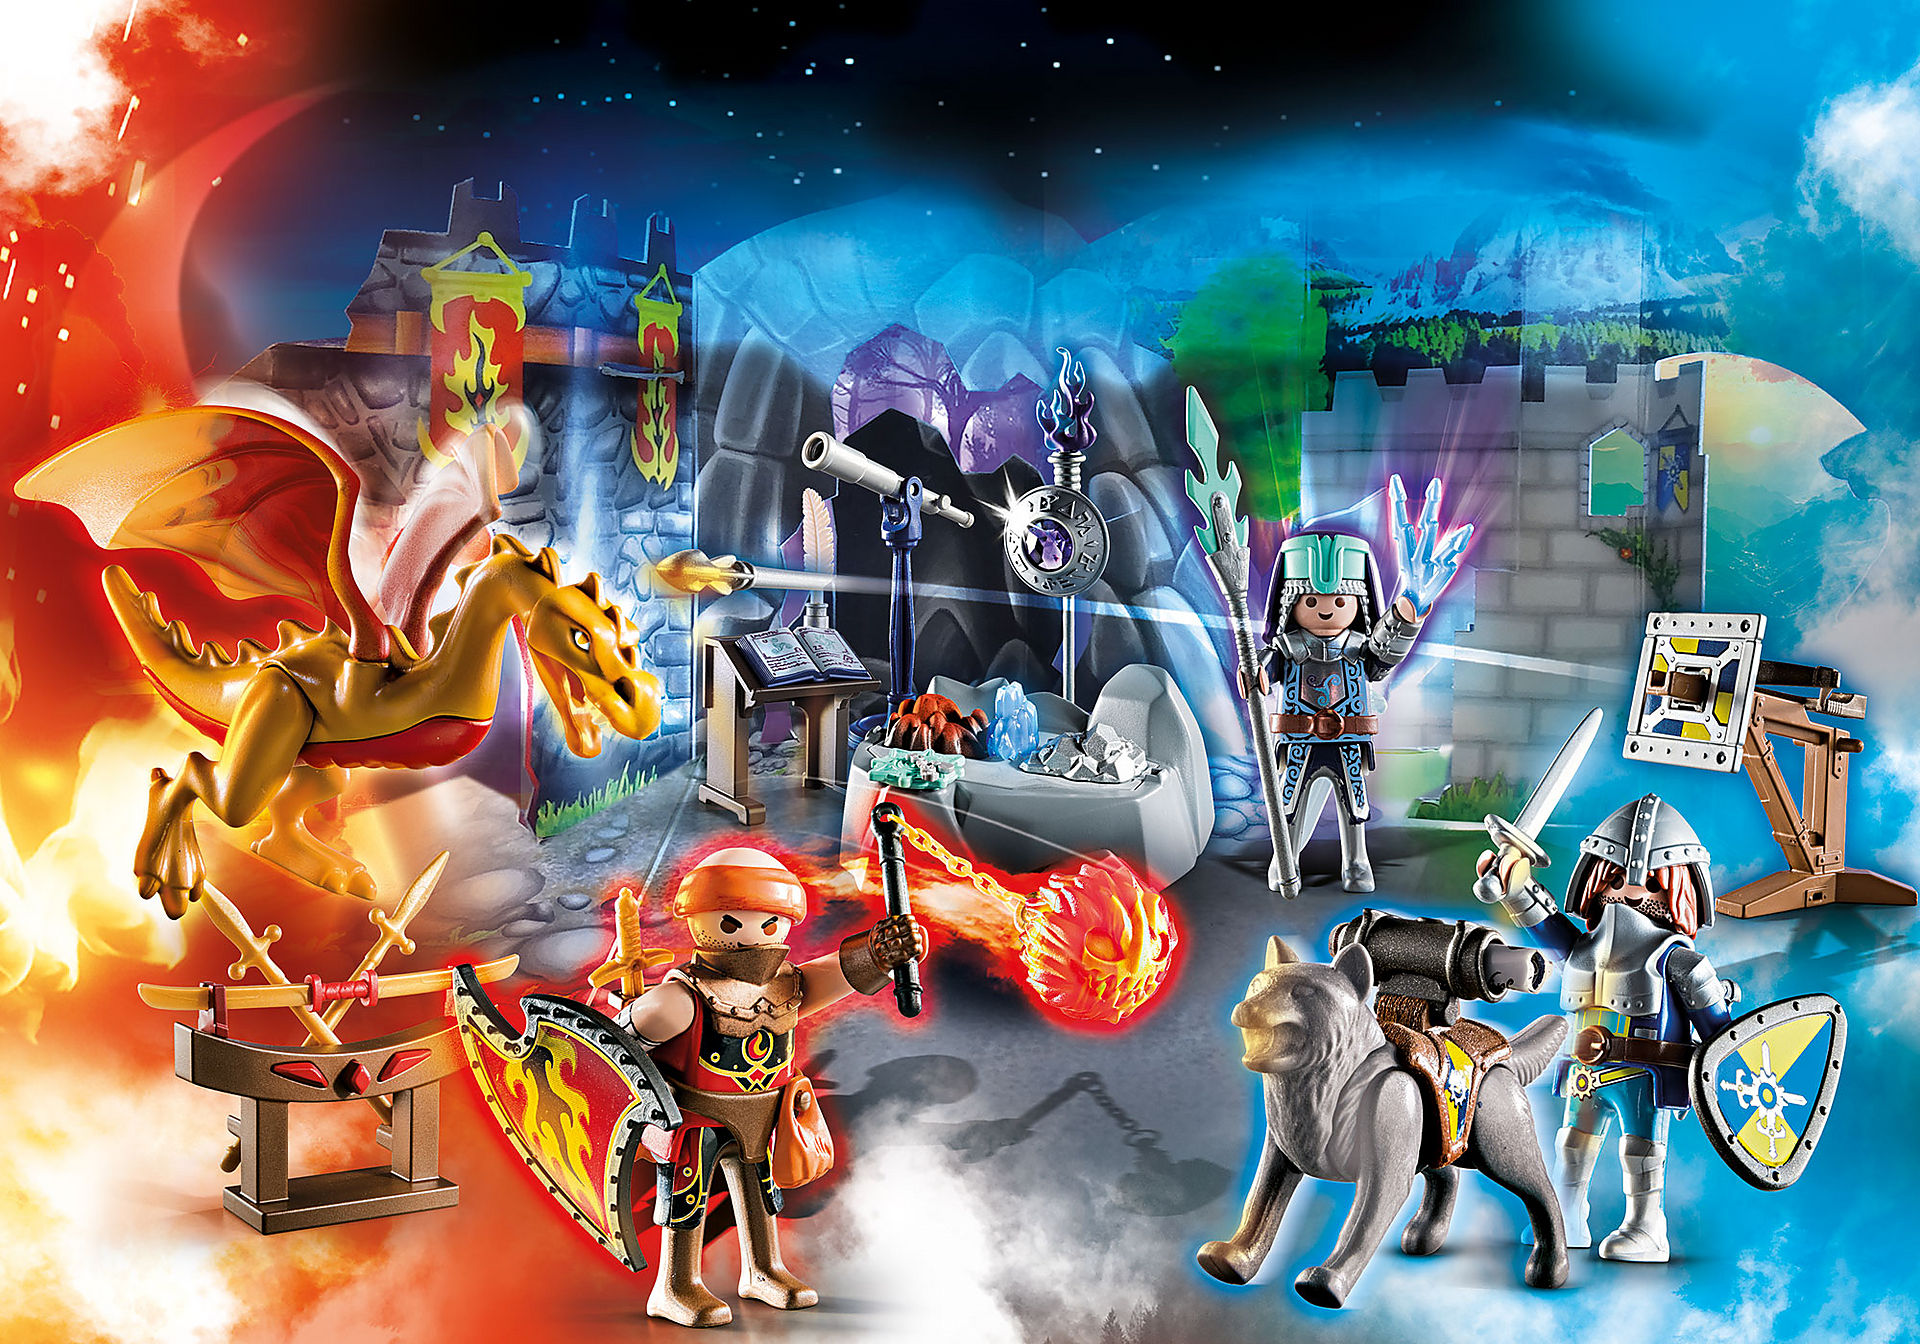 http://media.playmobil.com/i/playmobil/70187_product_extra1/Advent Calendar - Fight for the magic Stone